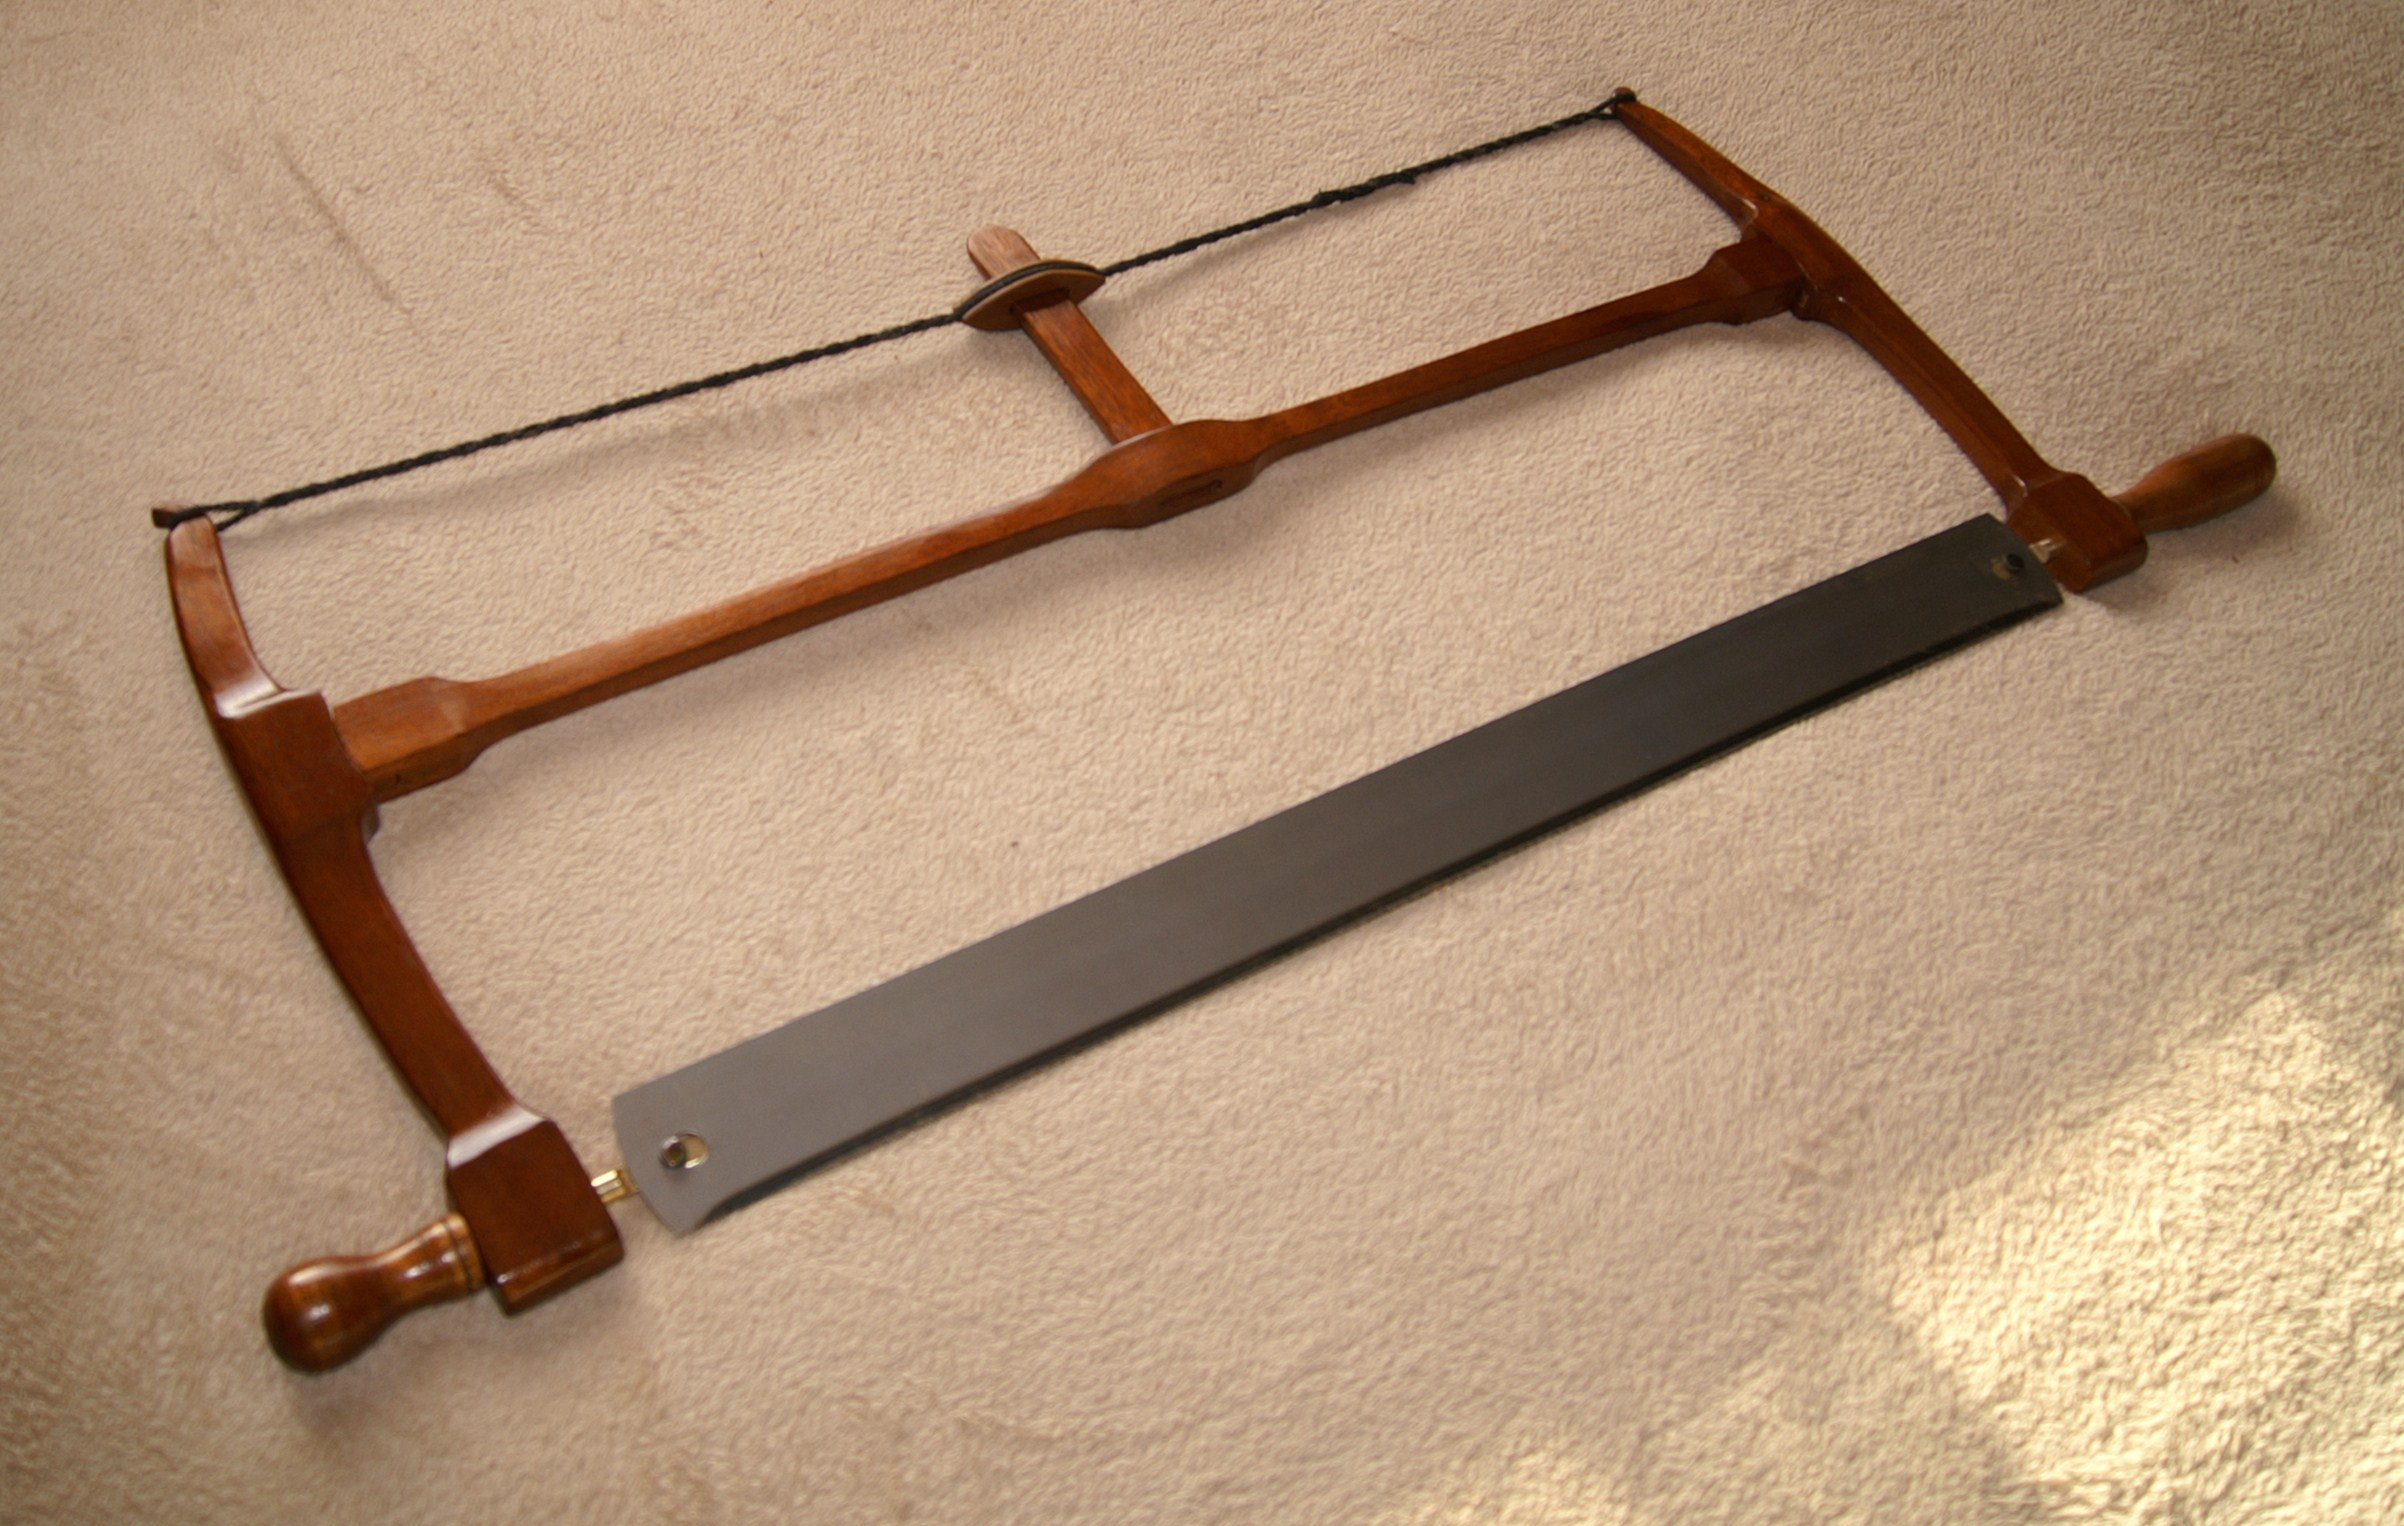 Frame Saw By John Carruthers Woodworking Masterclasses